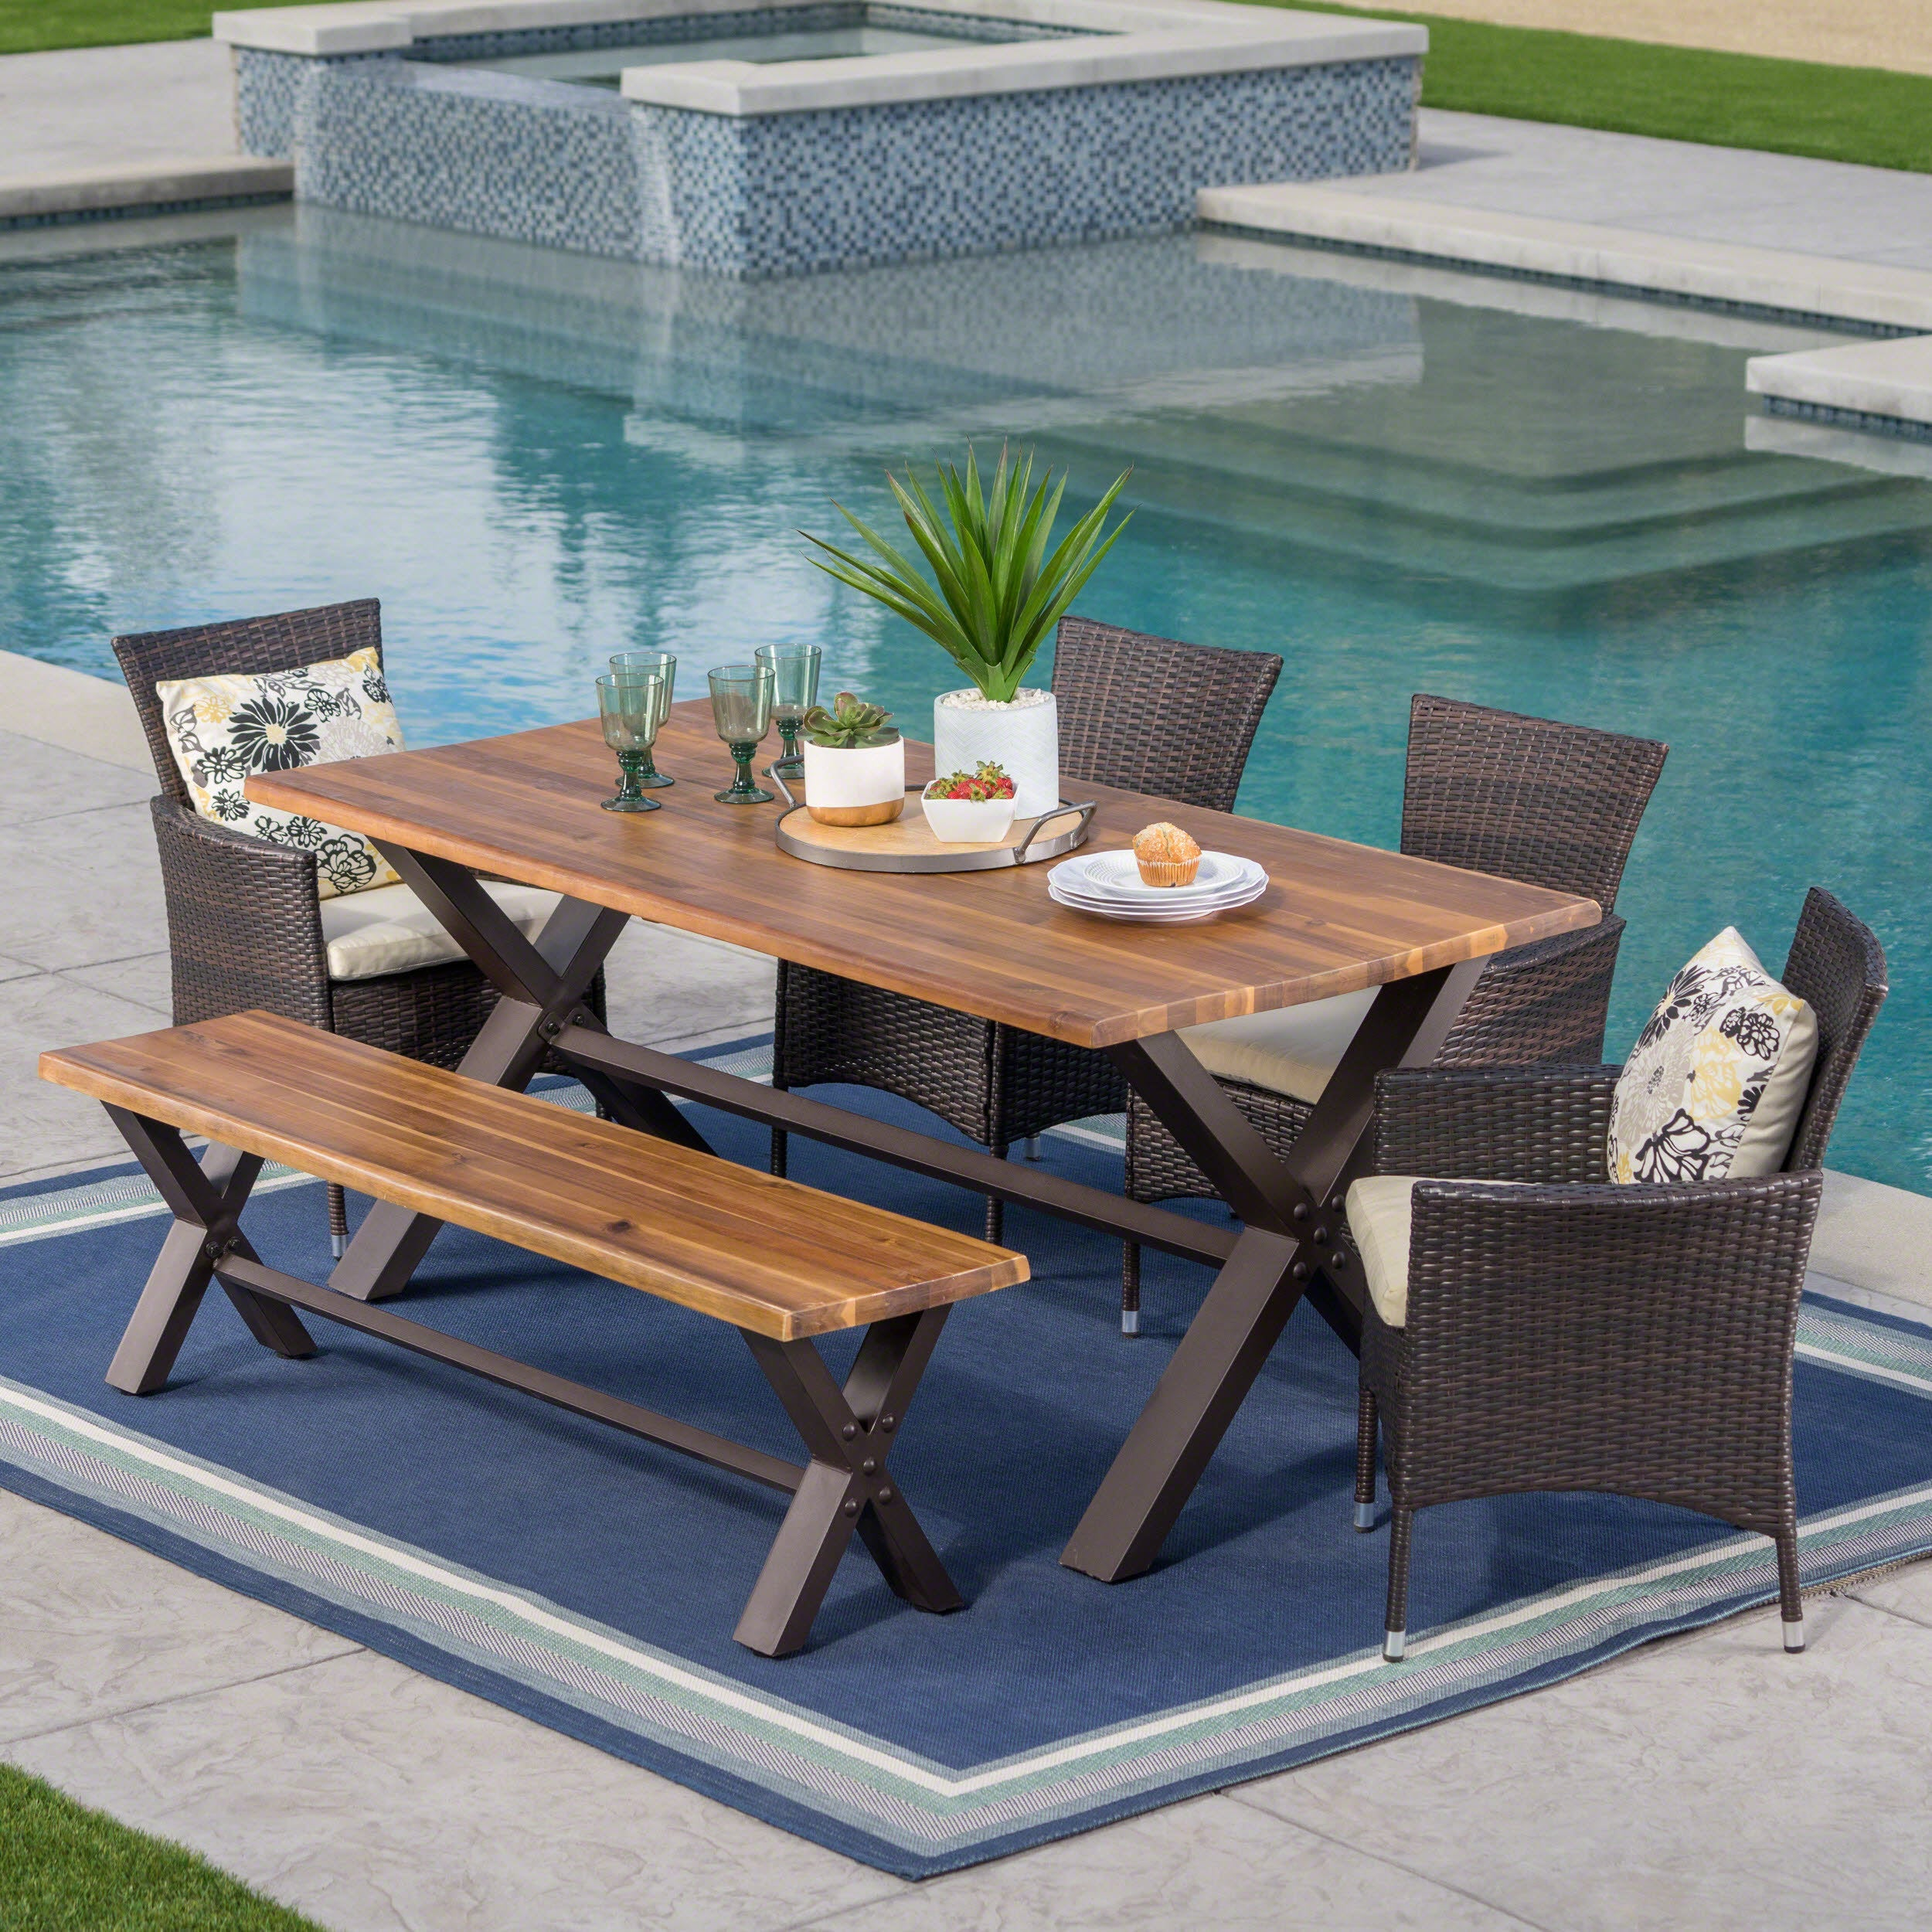 Shop Ozark Outdoor 6 Piece Rectangle Wicker Wood Dining Set With